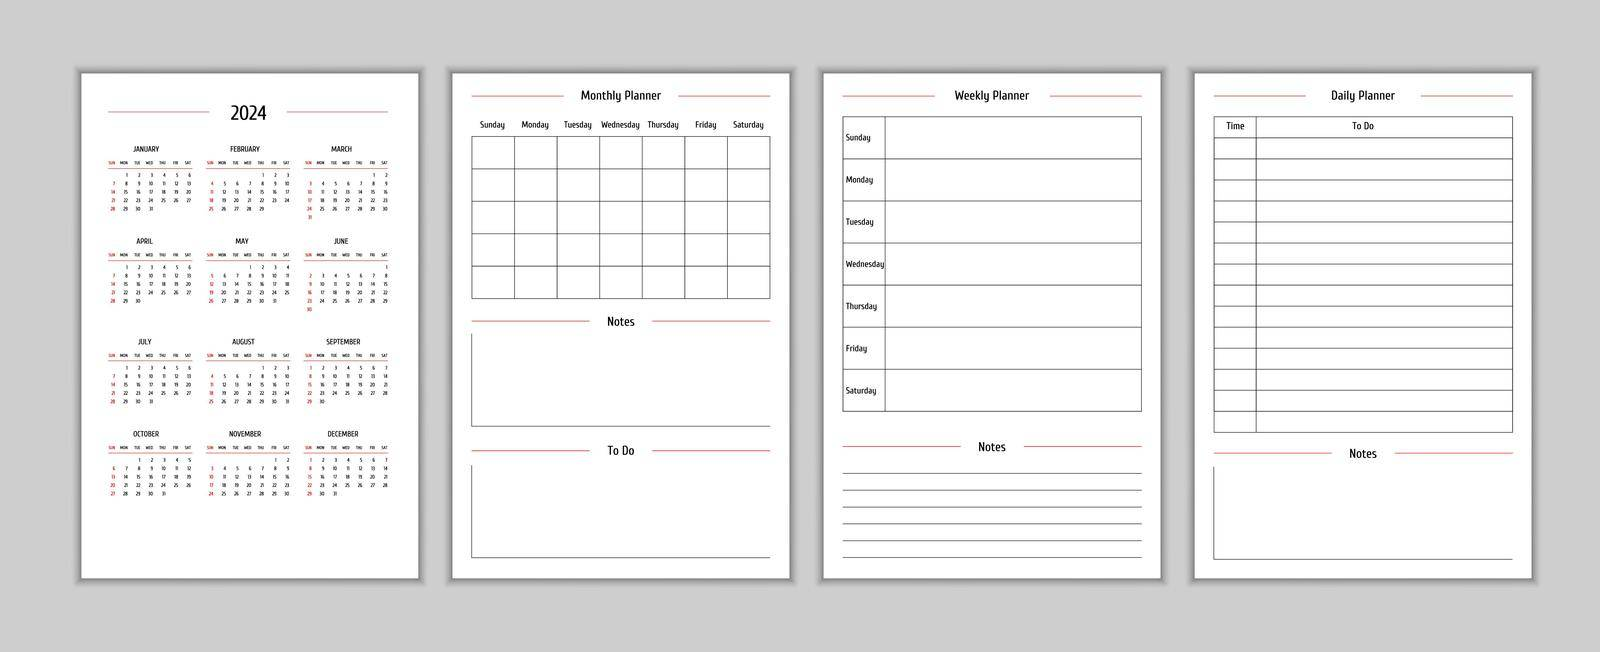 2024 calendar and daily weekly monthly personal planner diary template in classic strict style. Monthly calendar individual schedule minimalism restrained design for business notebook. Week starts on sunday